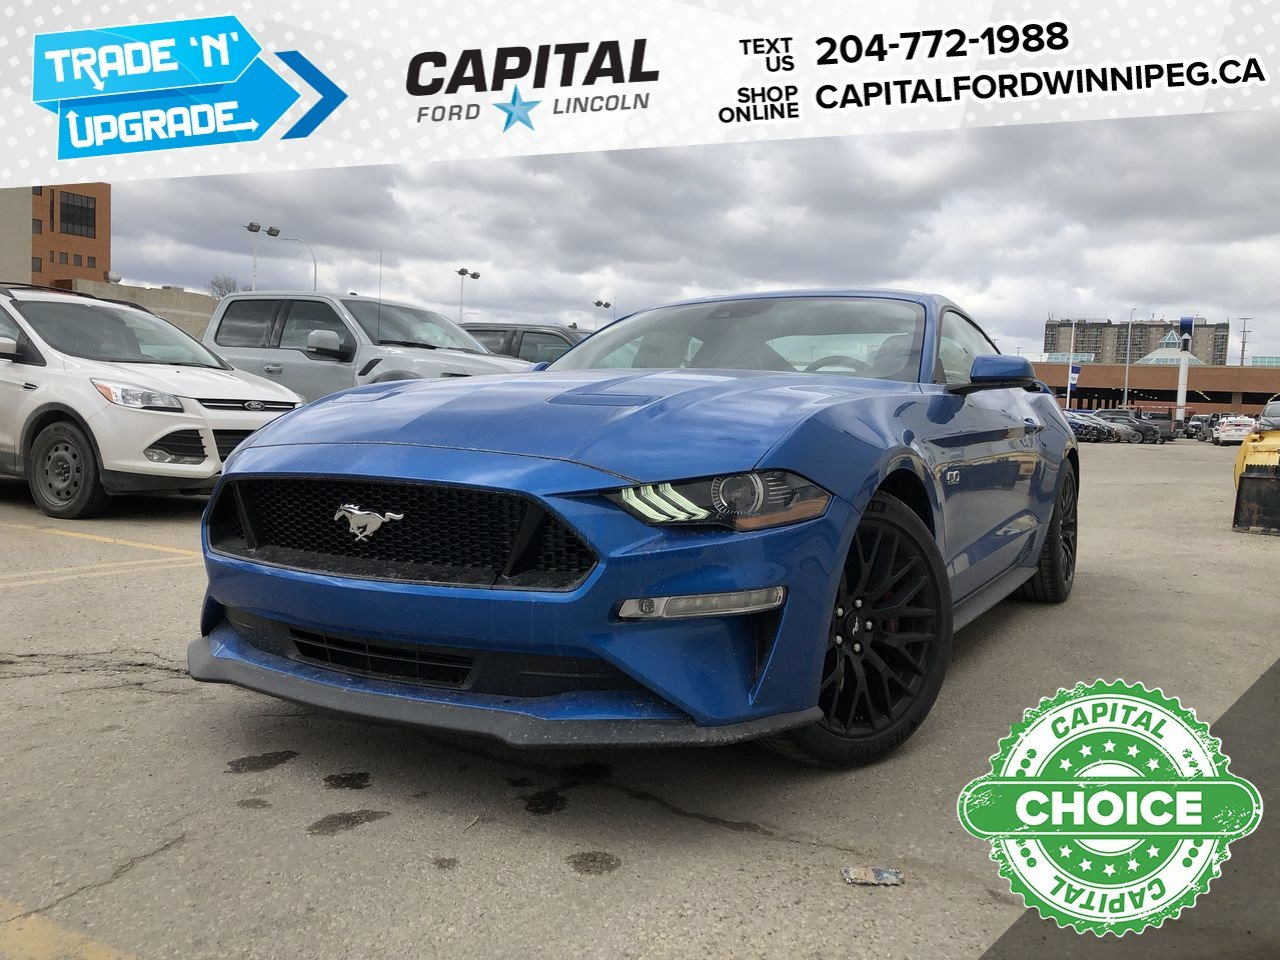 New 2019 Ford Mustang GT Premium*Performance Pack*Adaptive Cruise*Heated Seats